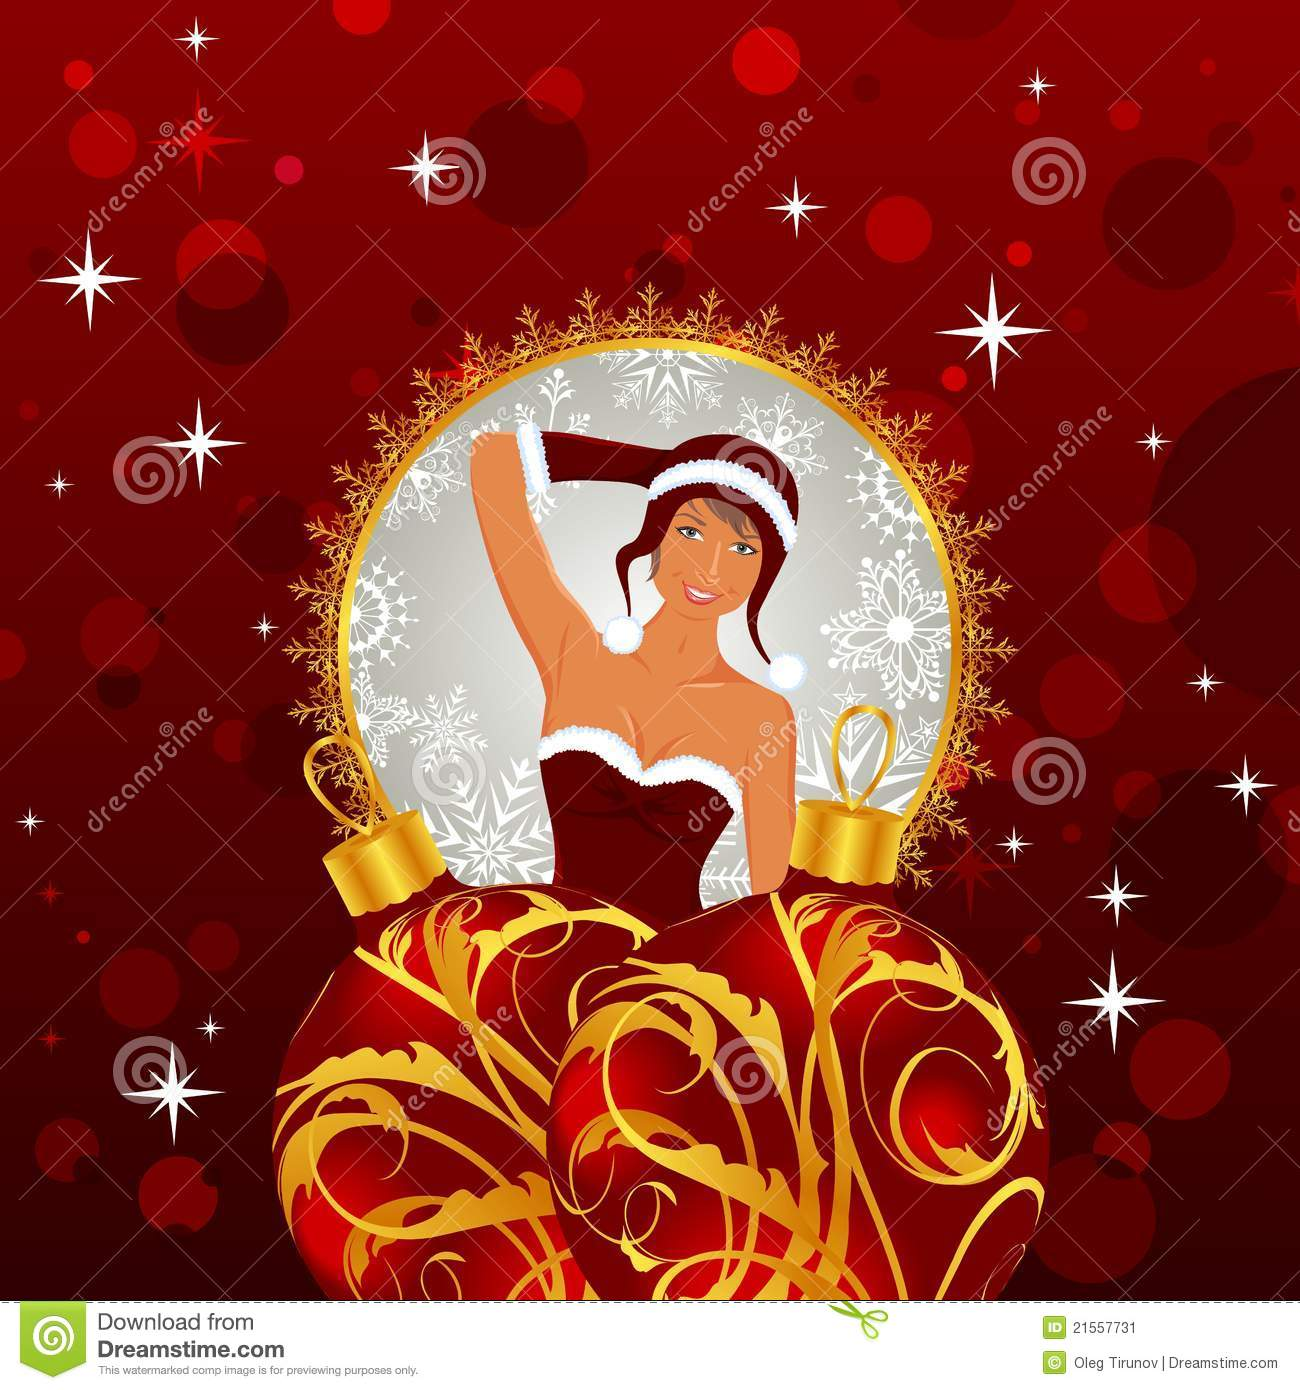 Christmas Card With Lady And Balls Stock Vector - Illustration of ...